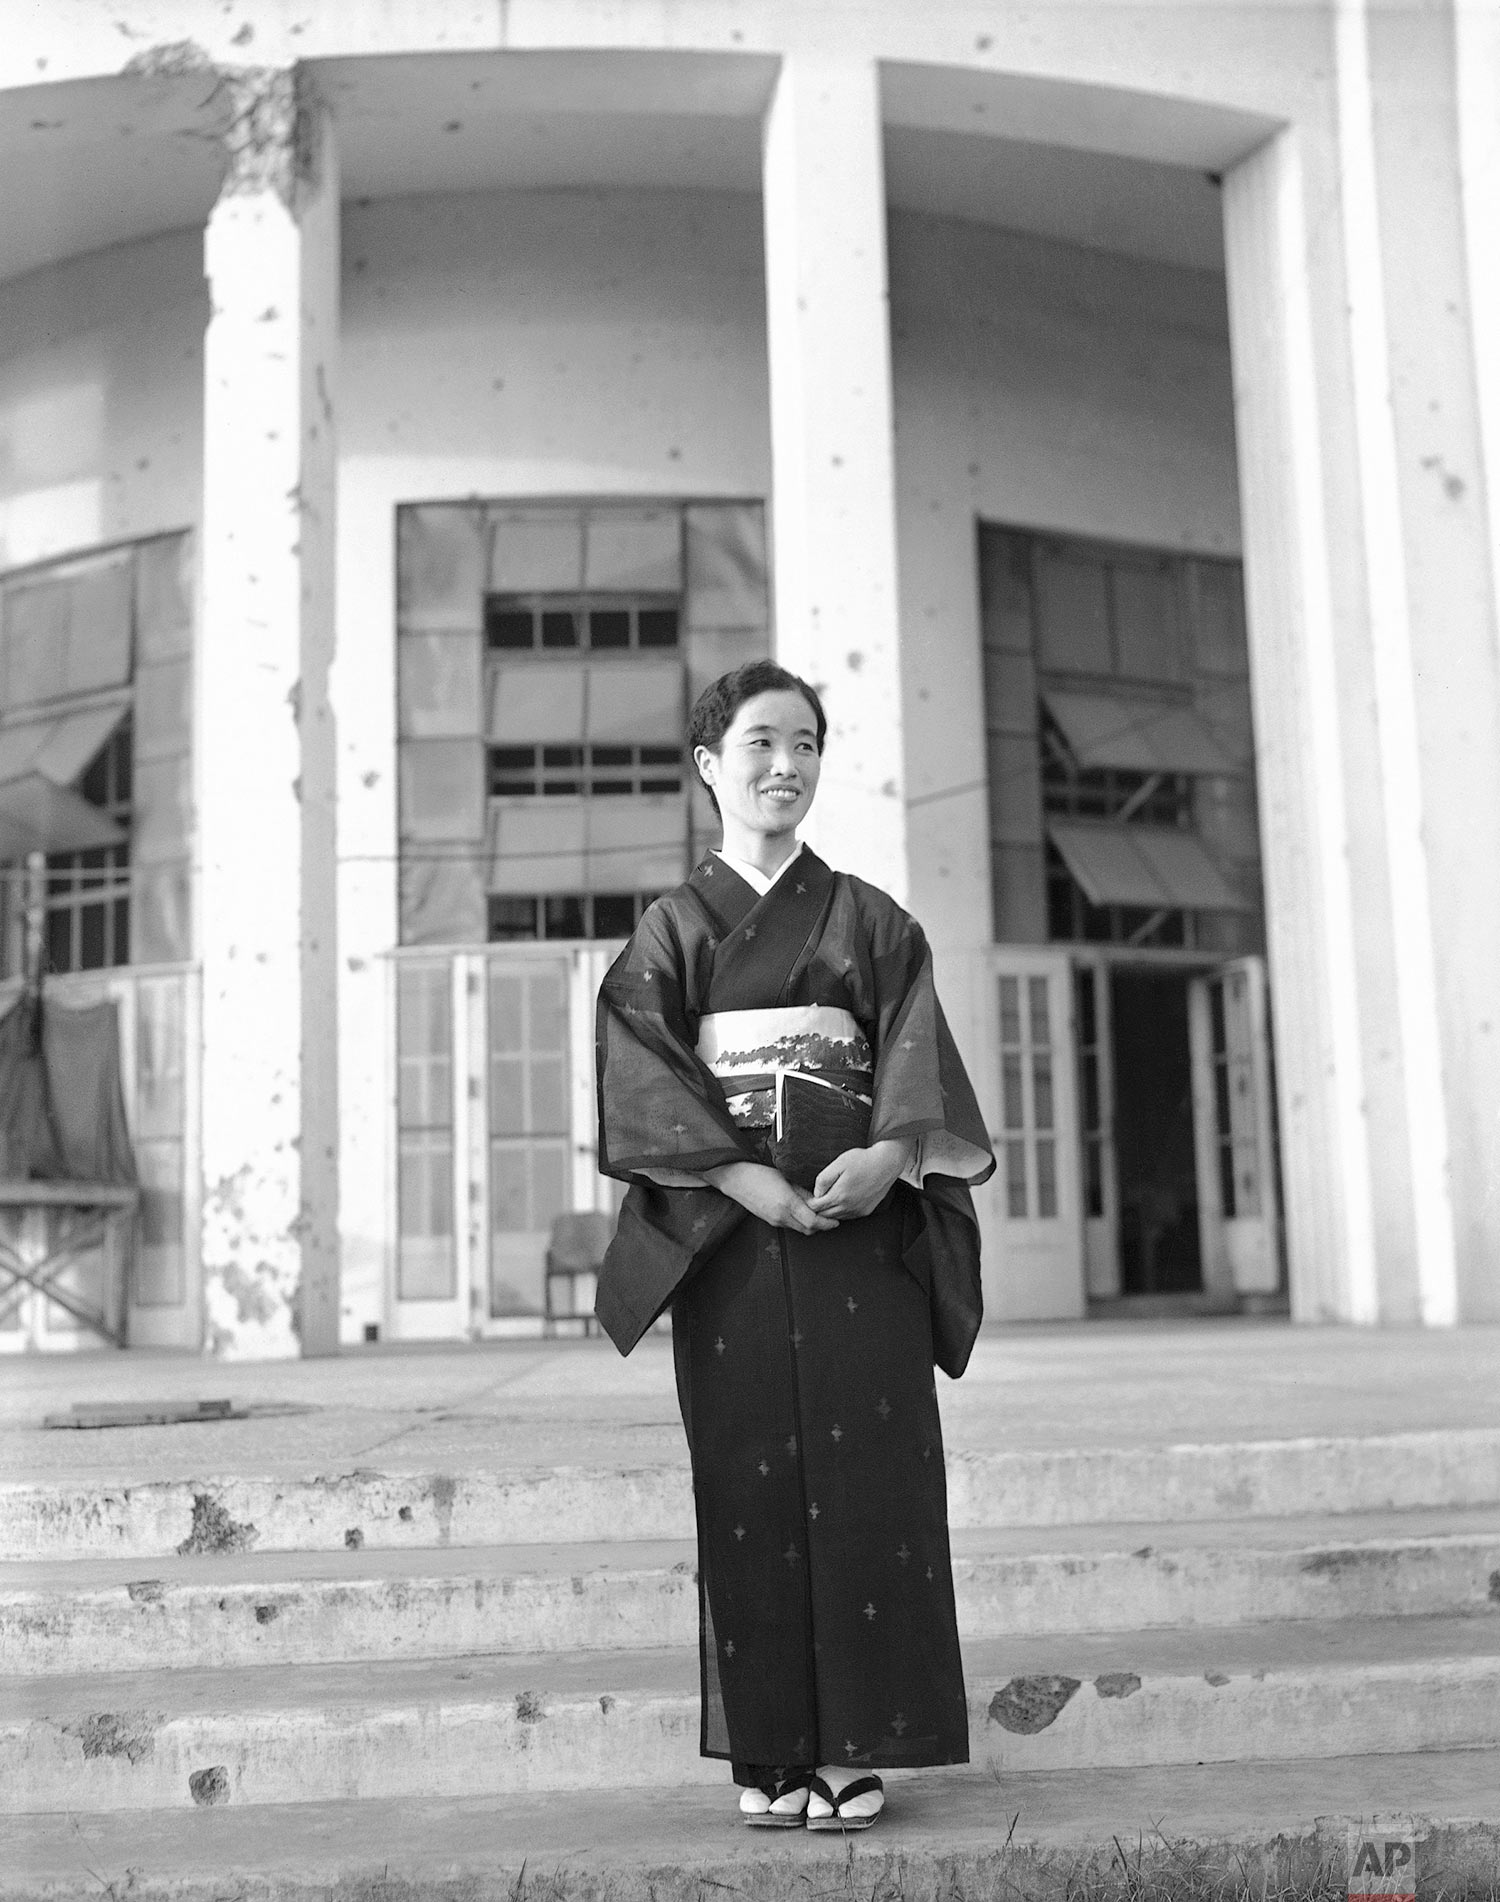 Fujiko Homma, wife of Lt. Gen. Masaharu Homma, accused war criminal now on trial for his life in Manila, Philippines, arrived in Manila on Jan. 17, 1946, to appear as a character witness for her husband. (AP Photo/Max Desfor)